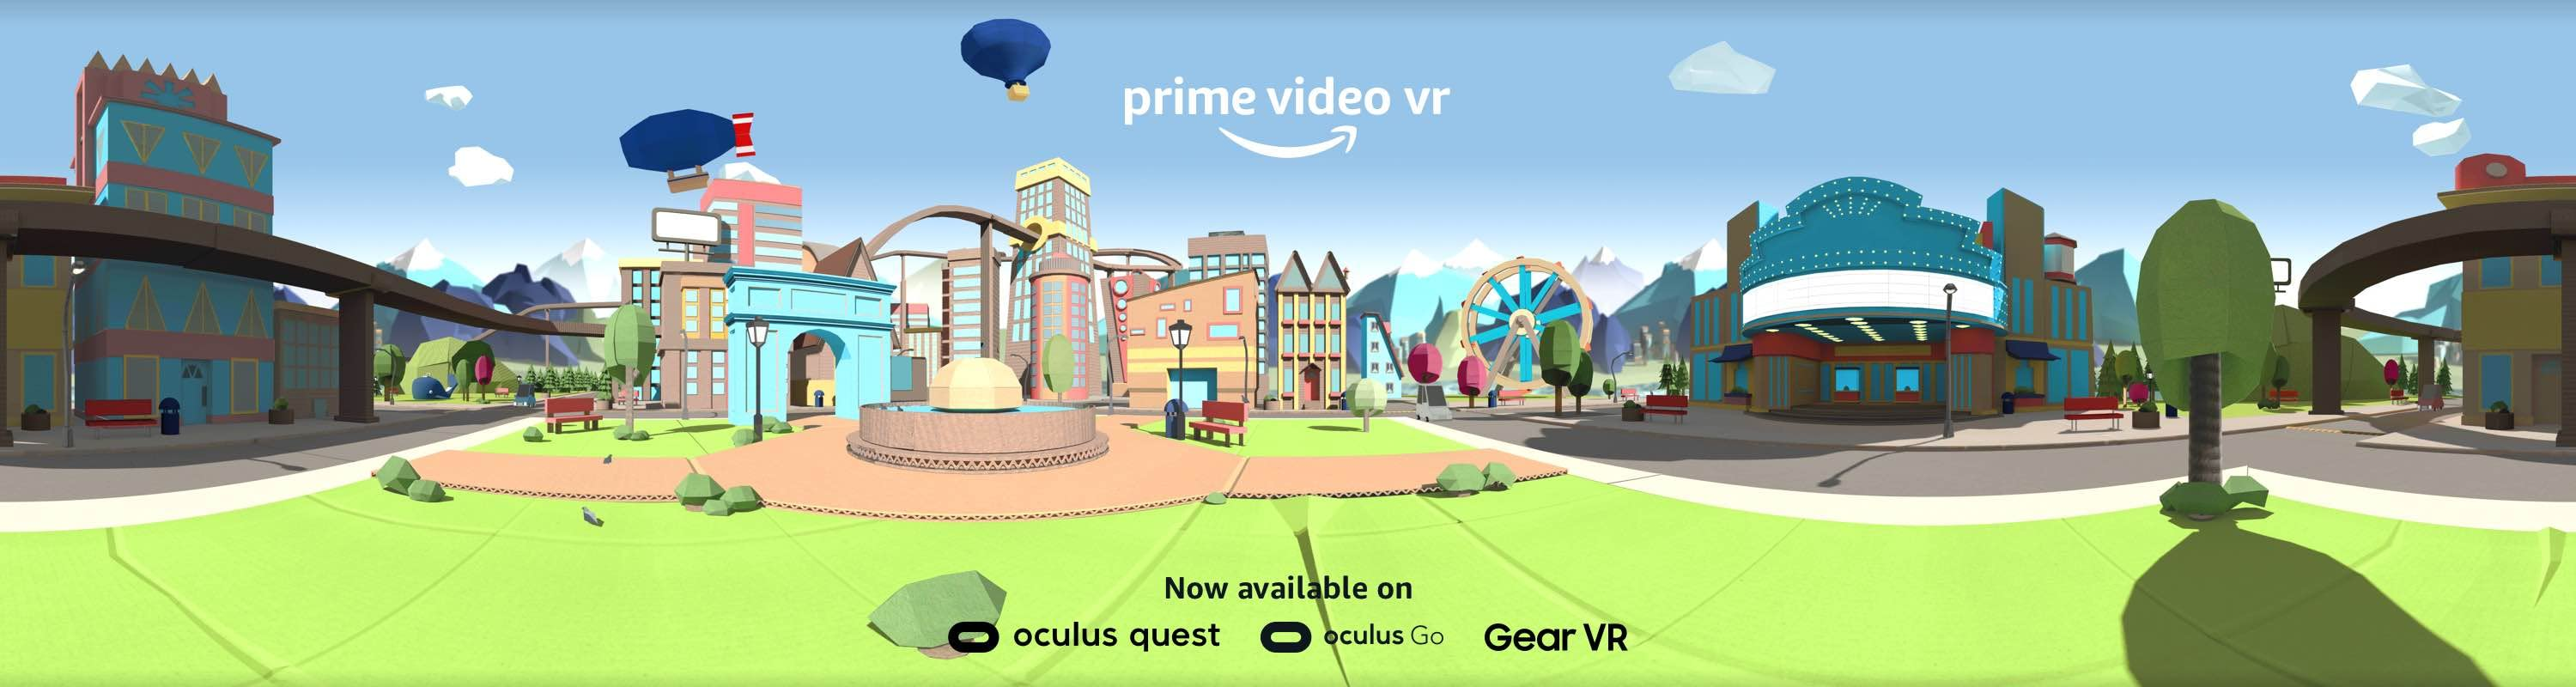 Welcome to Prime Video VR